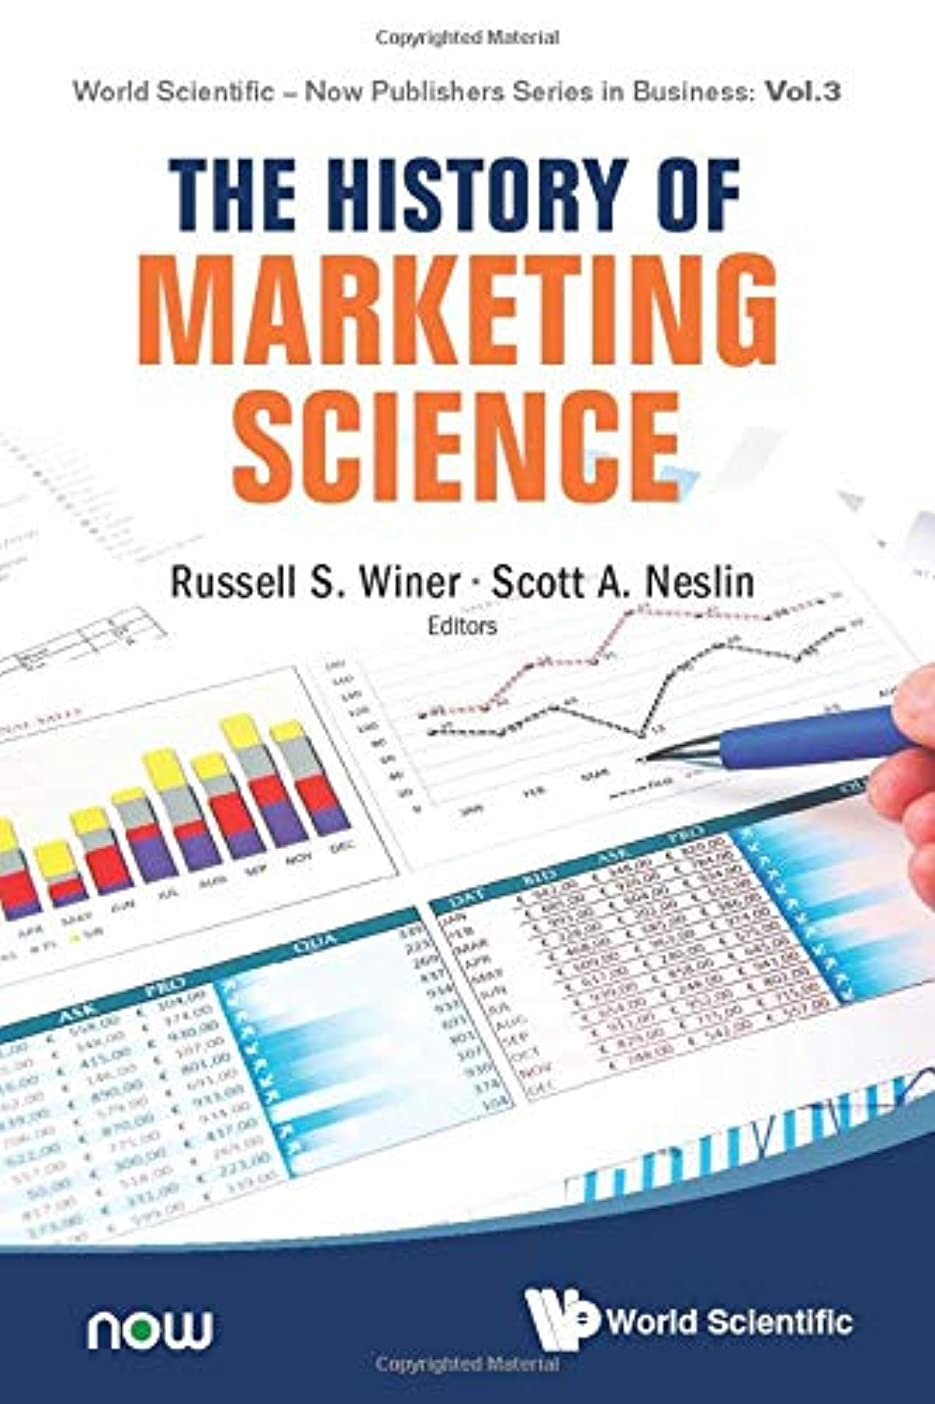 健全引くやさしいThe History of Marketing Science (World Scientific-now Publishers Series in Business)